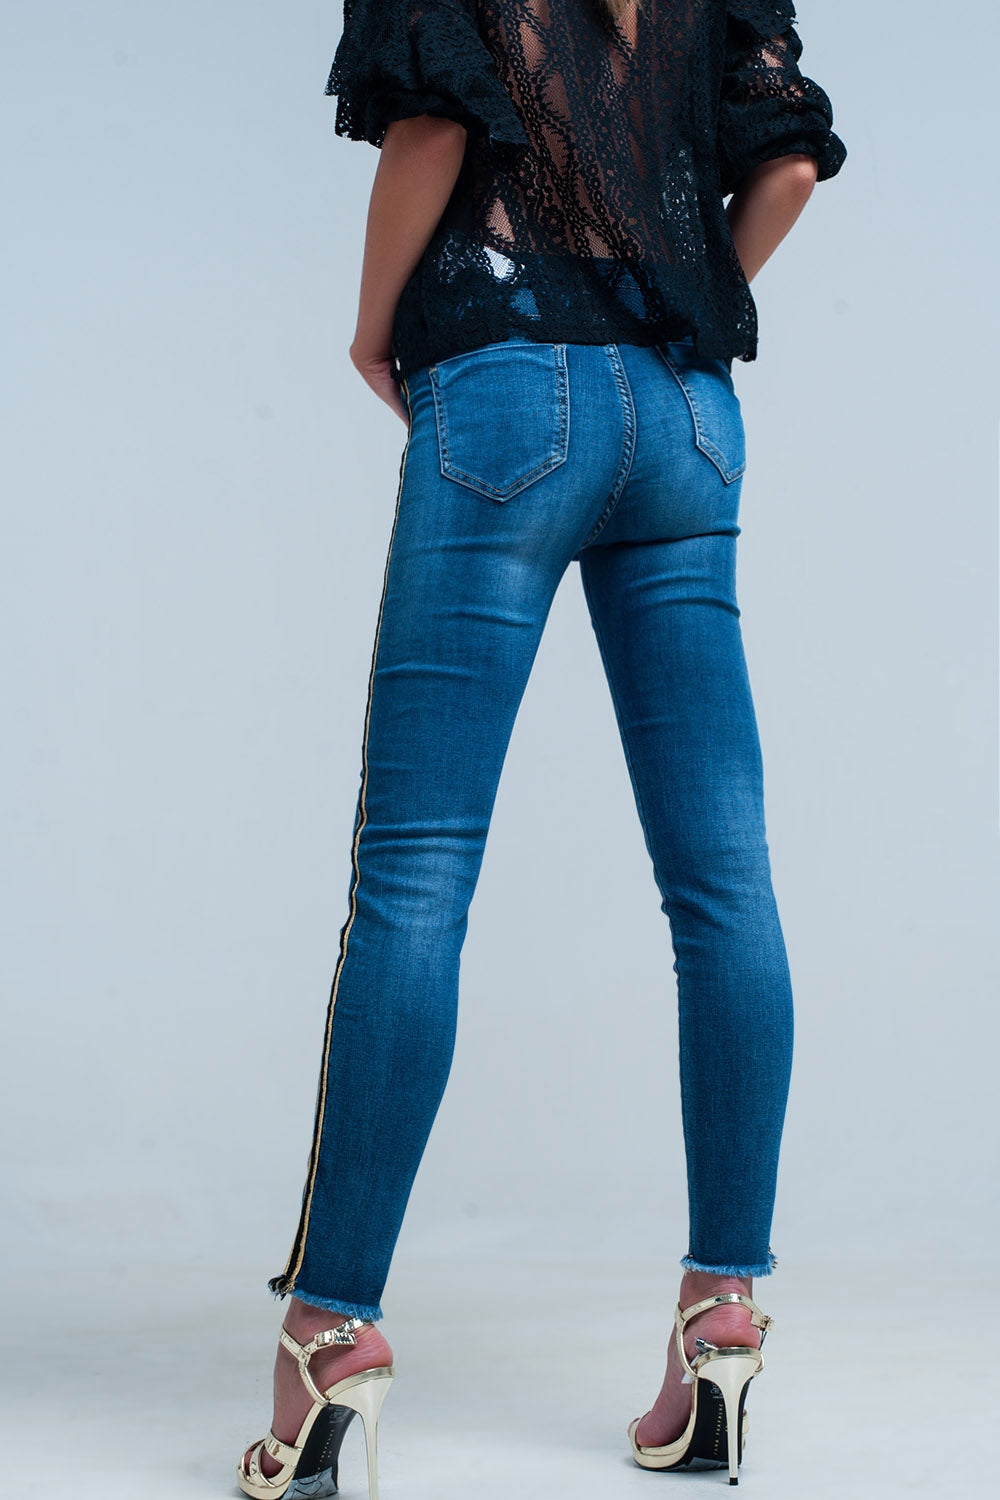 Blue Denim Pants With Gold And Black Sideband